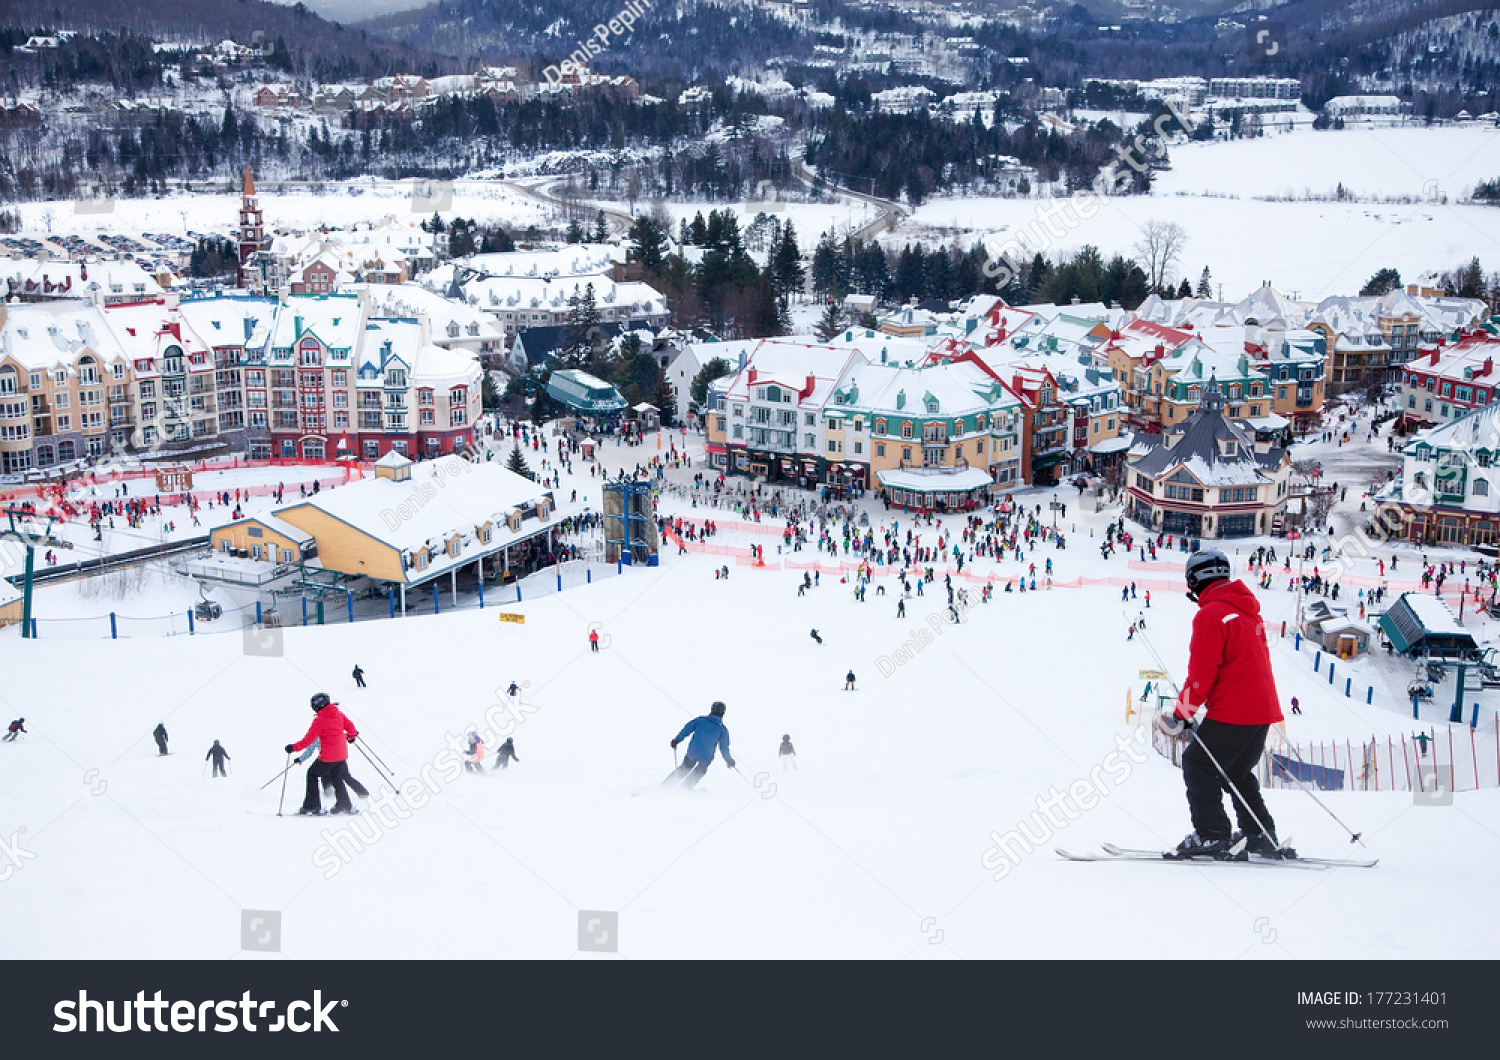 Mont-Tremblant (QC) Canada  city images : MONT TREMBLANT, QC, CANADA FEBRUARY 9: Skiers and snowboarders are ...